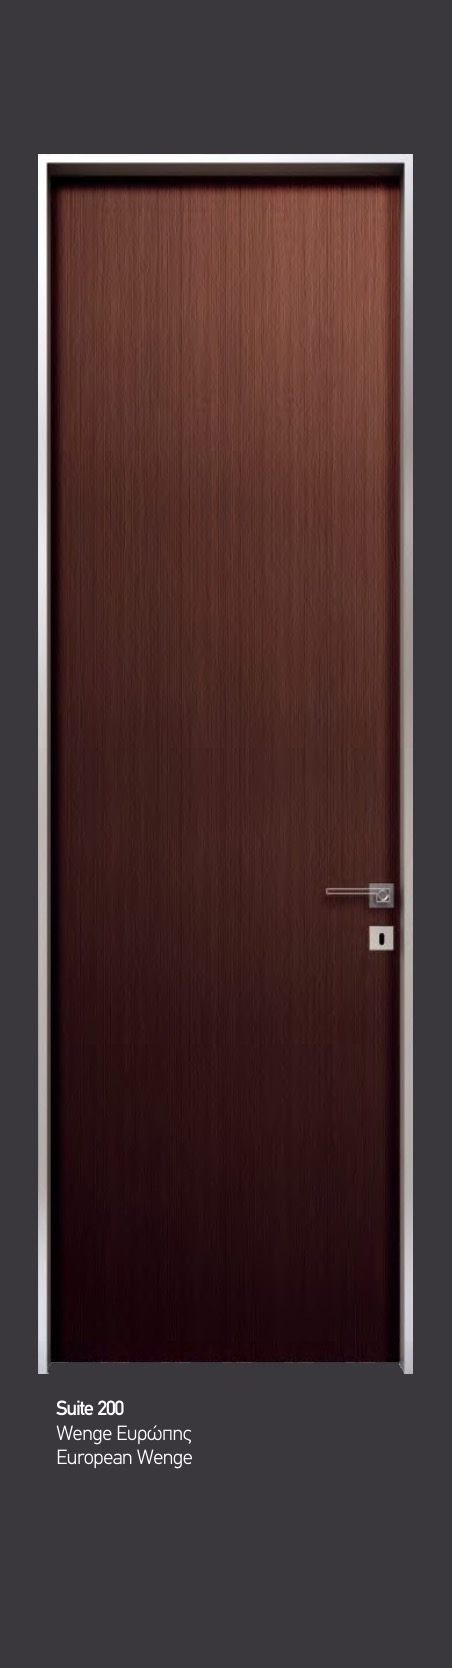 Suite 200 European Wenge